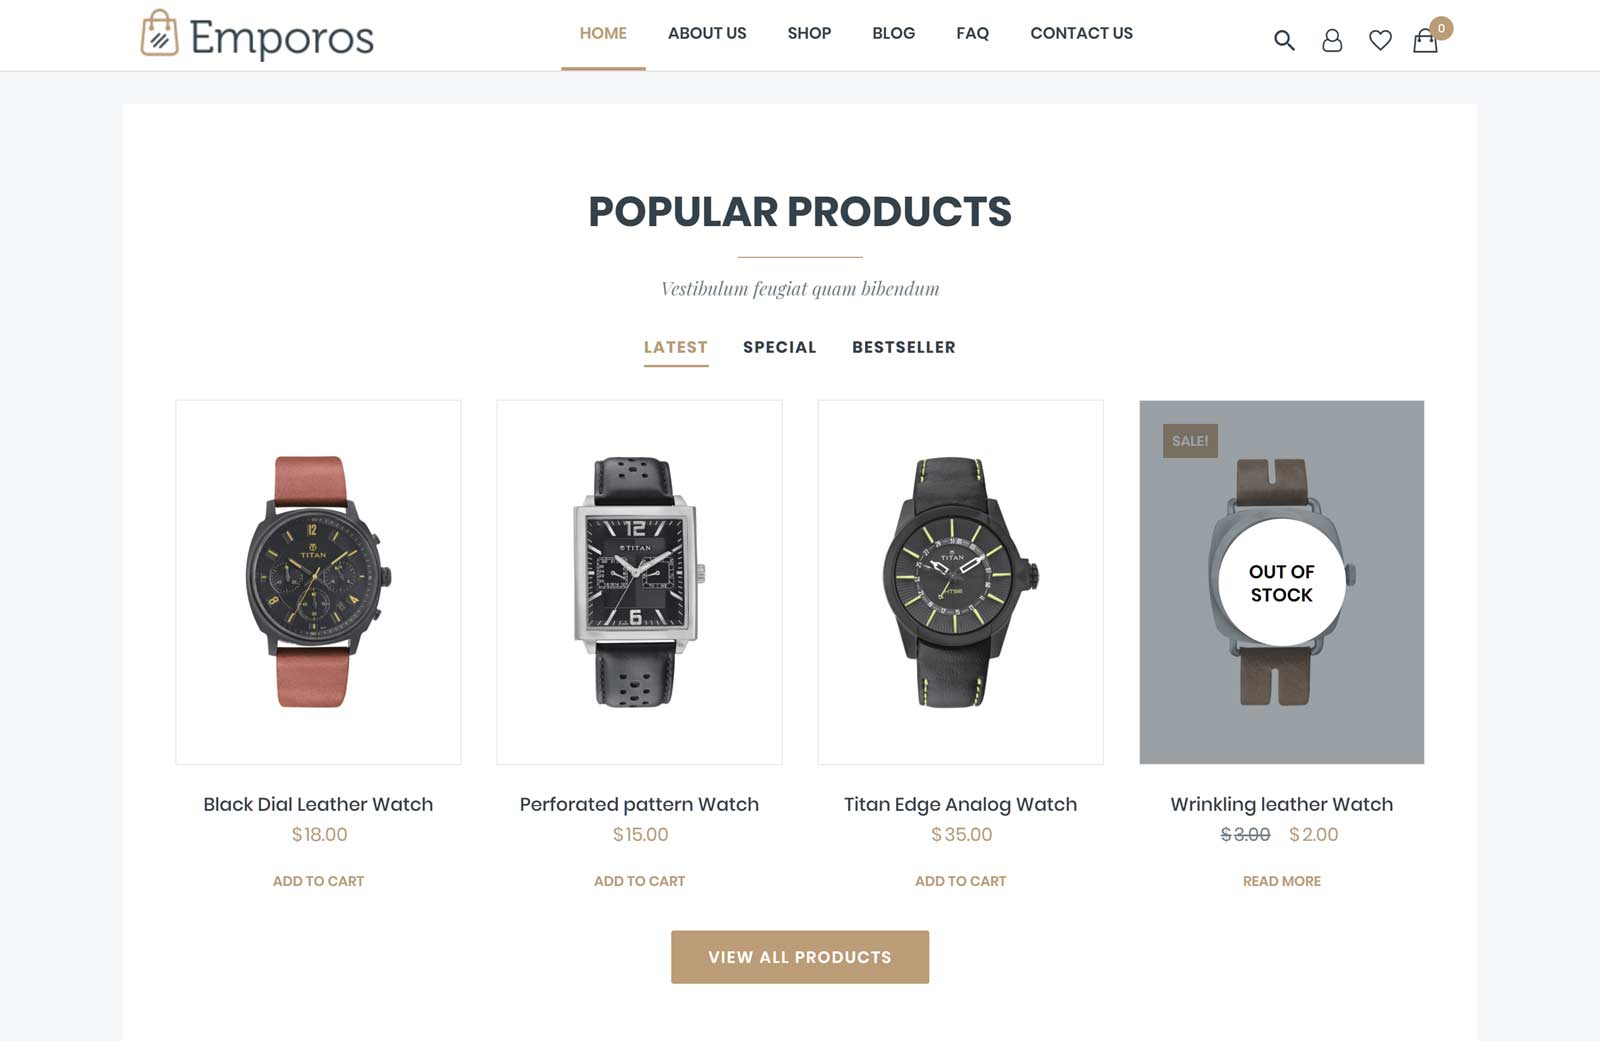 Emporos Theme Product Display